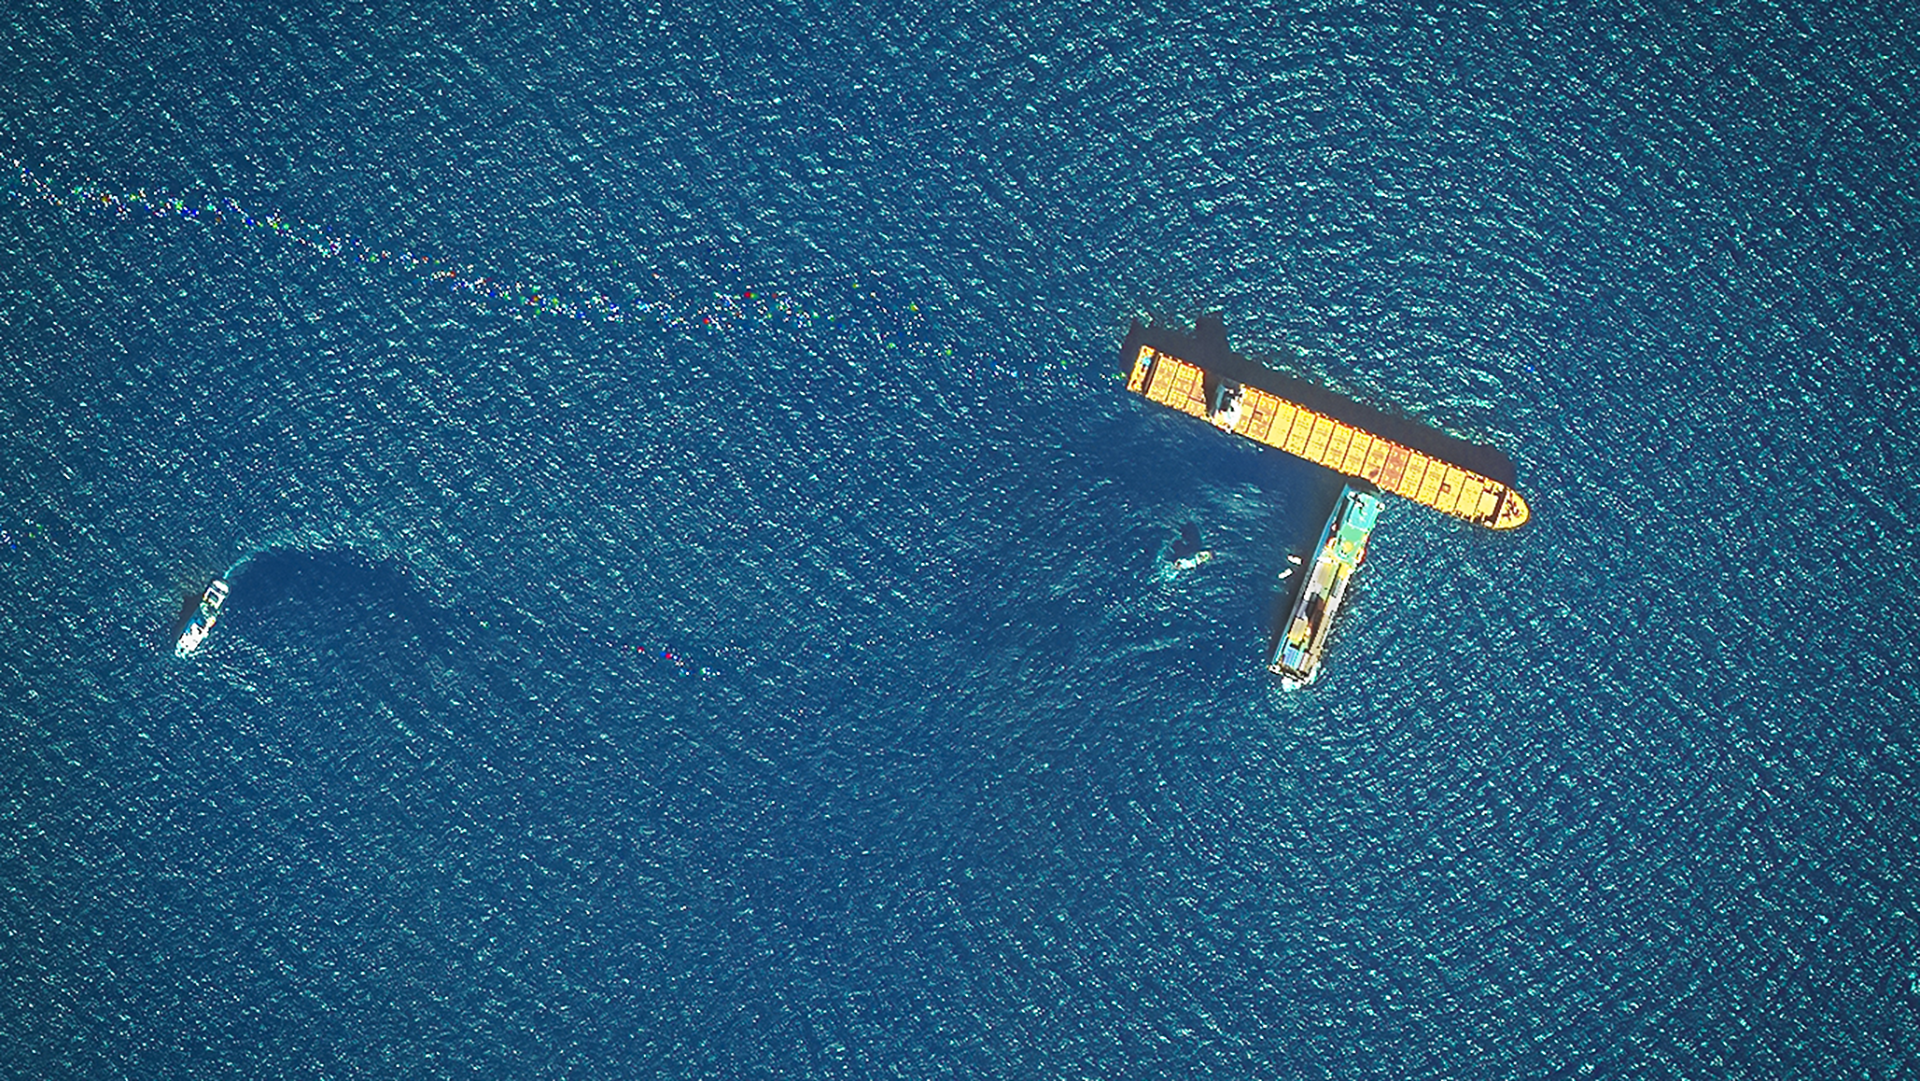 European Space Imaging | Major Oil Spill in the Mediterranan